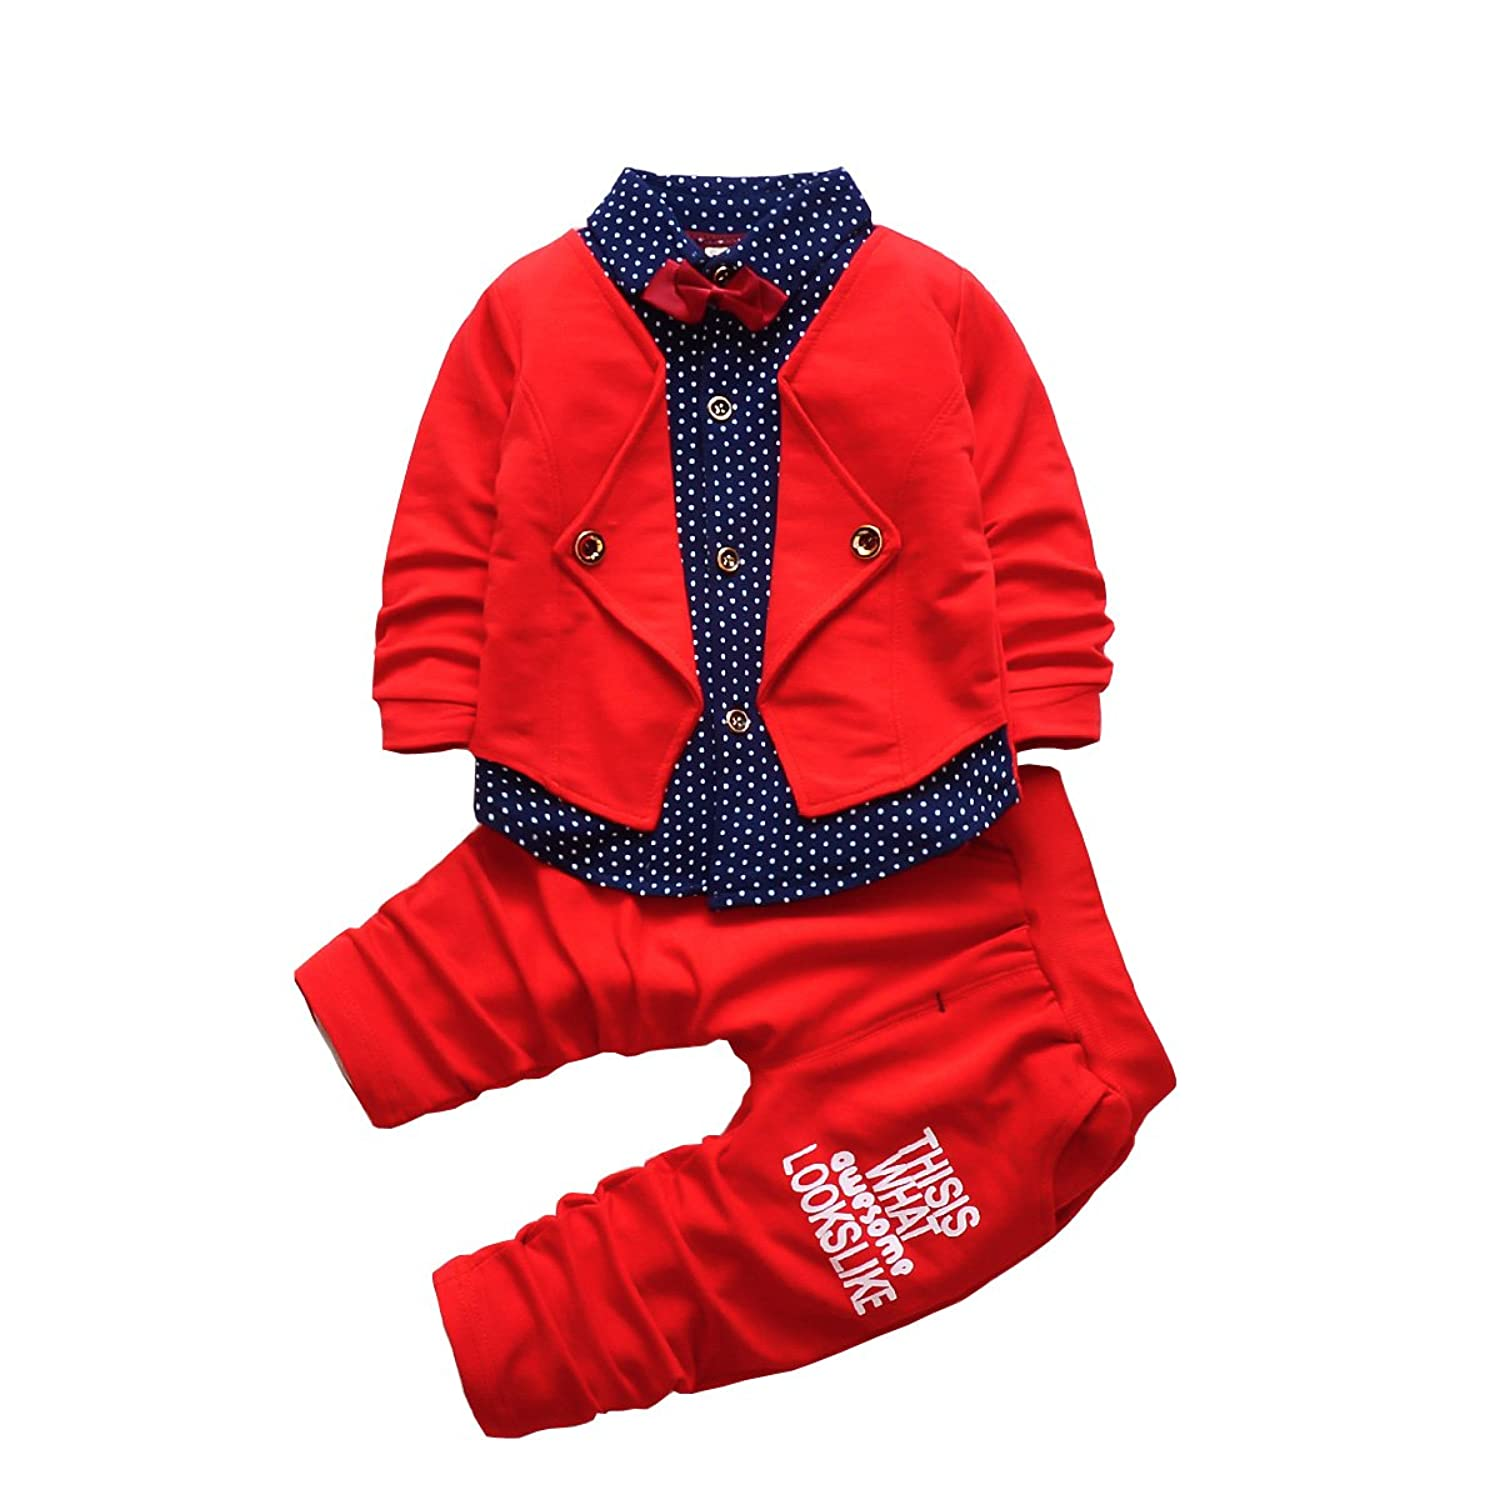 Boys' Baby Clothing Newborn Baby Boys Girls Lovely Long Sleeves Keep Warm Cartoon Hooded Romper Jumpsuit Casual Wear Wholesale&dropshipping#40 Various Styles